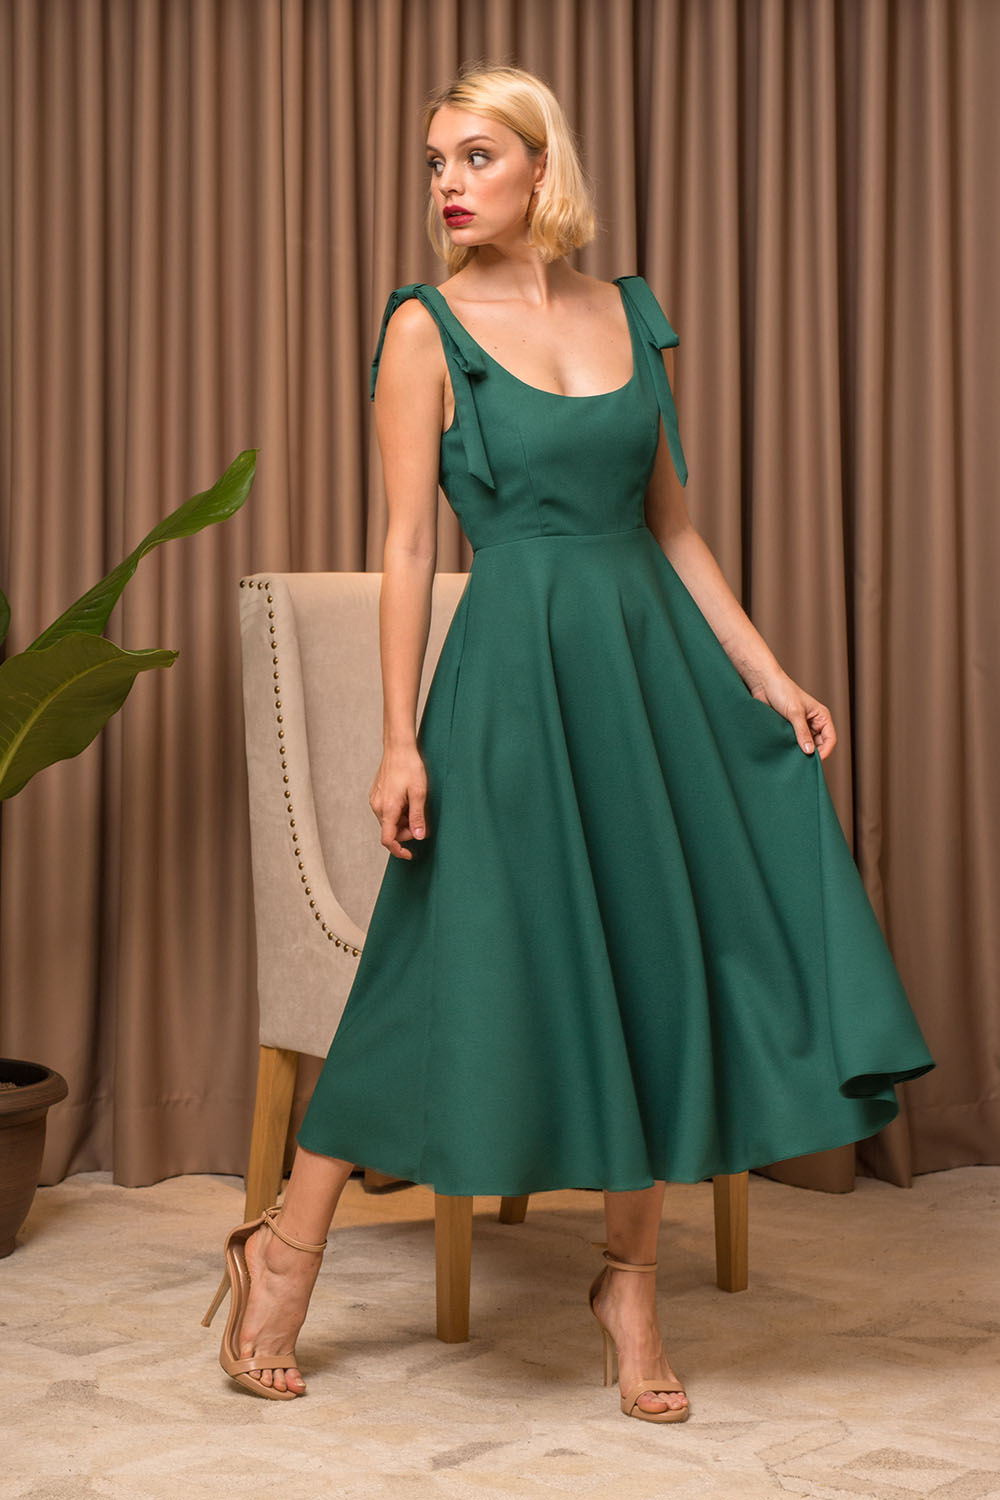 a34f82b4e93 ... Dress with Pockets and Bow Tie on Shoulder (Emerald Green Crepe).  first-1000x1500_Zoo_HOL18_L037_012; sec-1000x1500_Zoo_HOL18_L037_010 ...